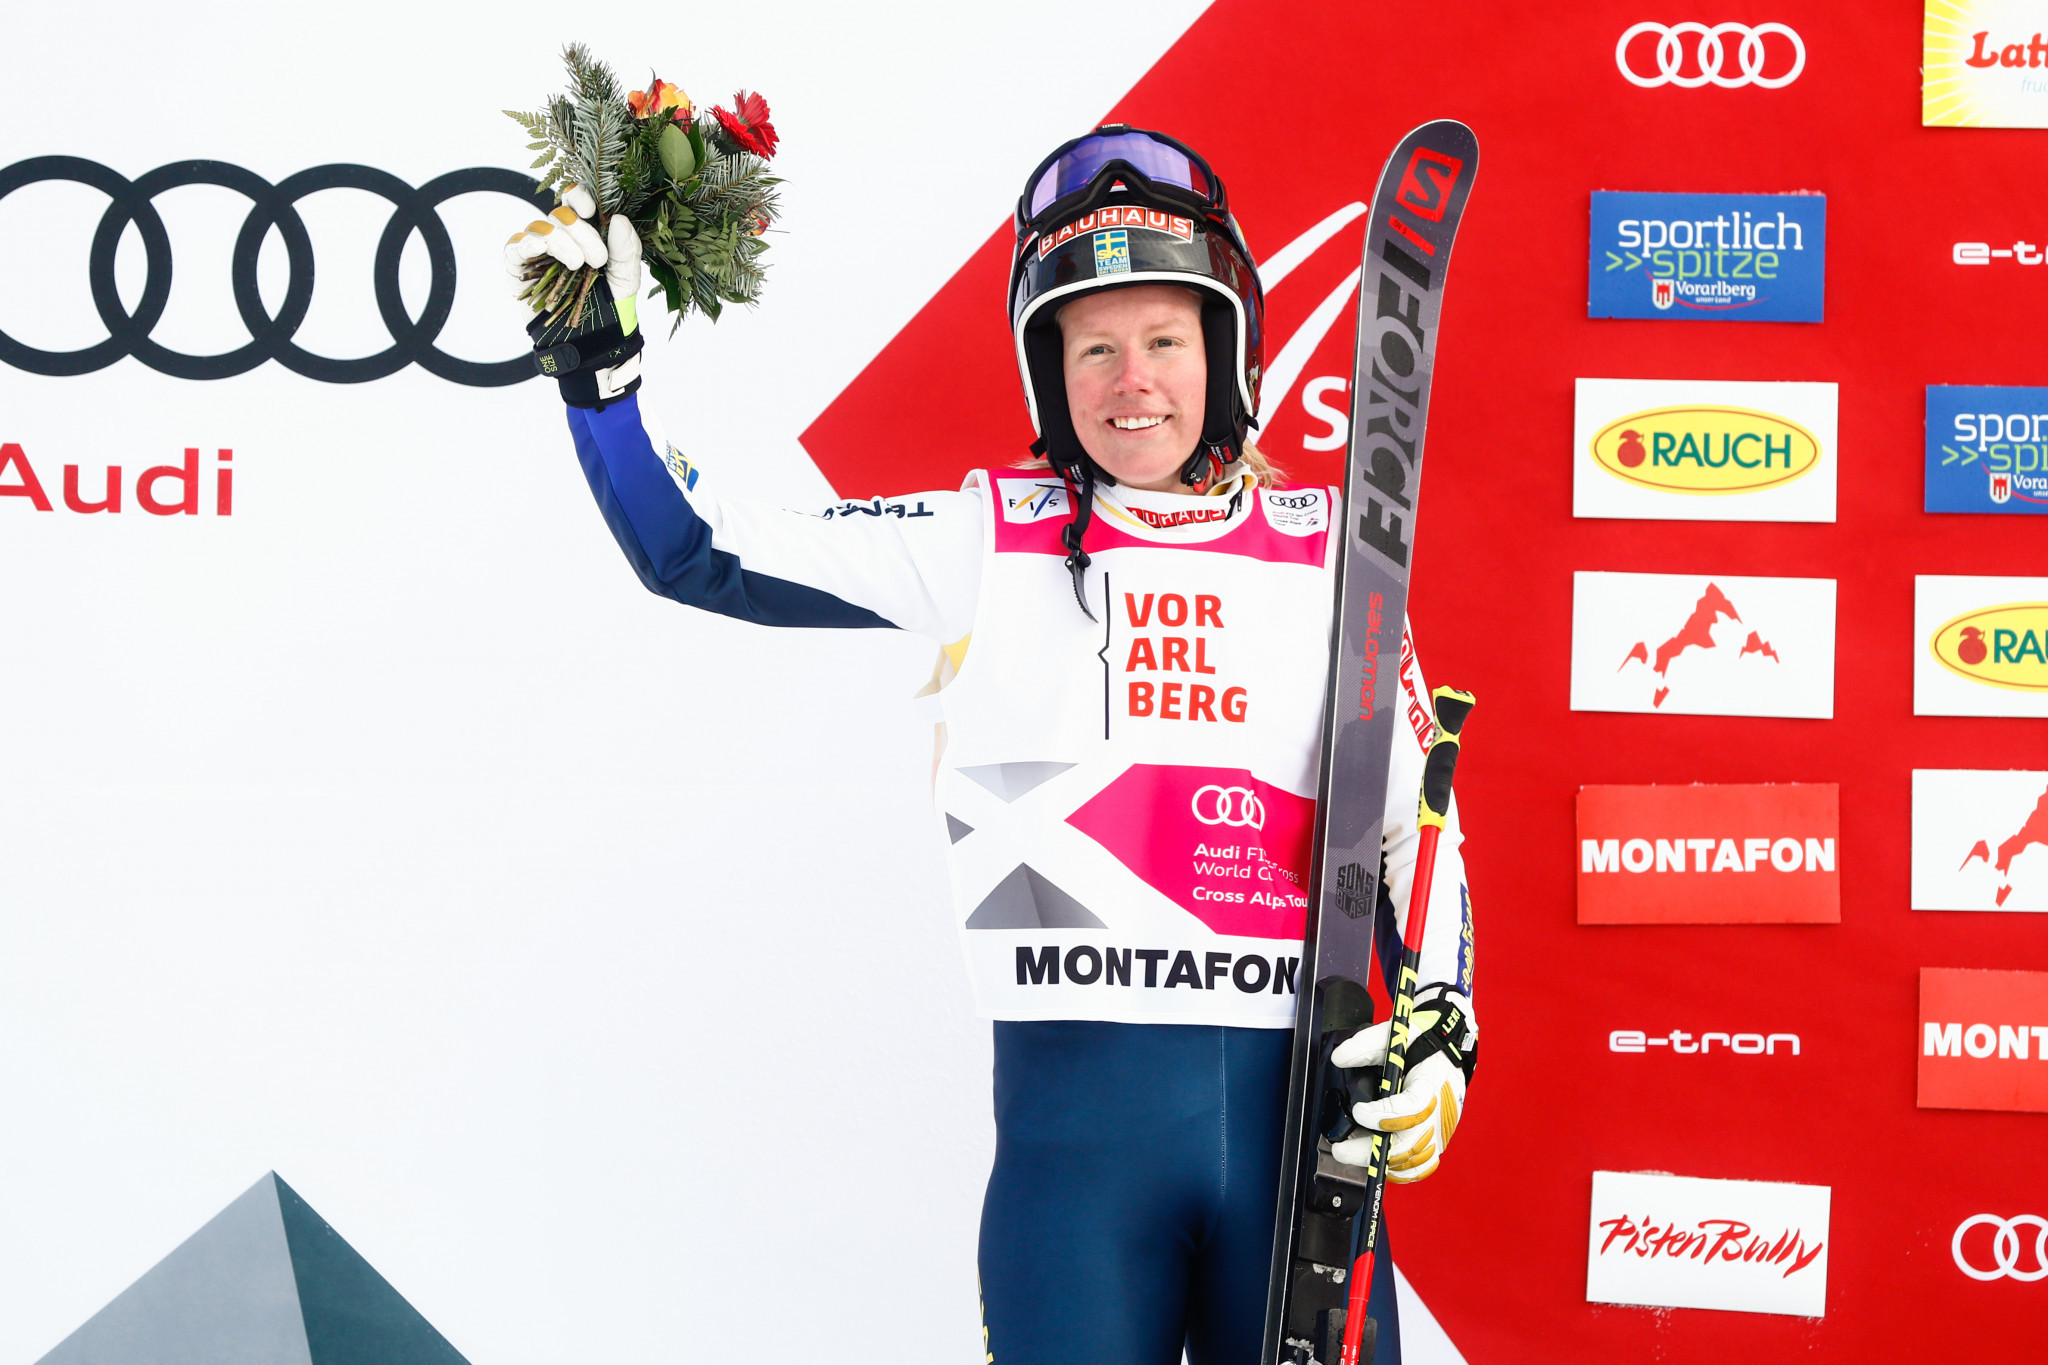 Näslund dominates qualification at home FIS Ski Cross World Cup in Idre Fjäll